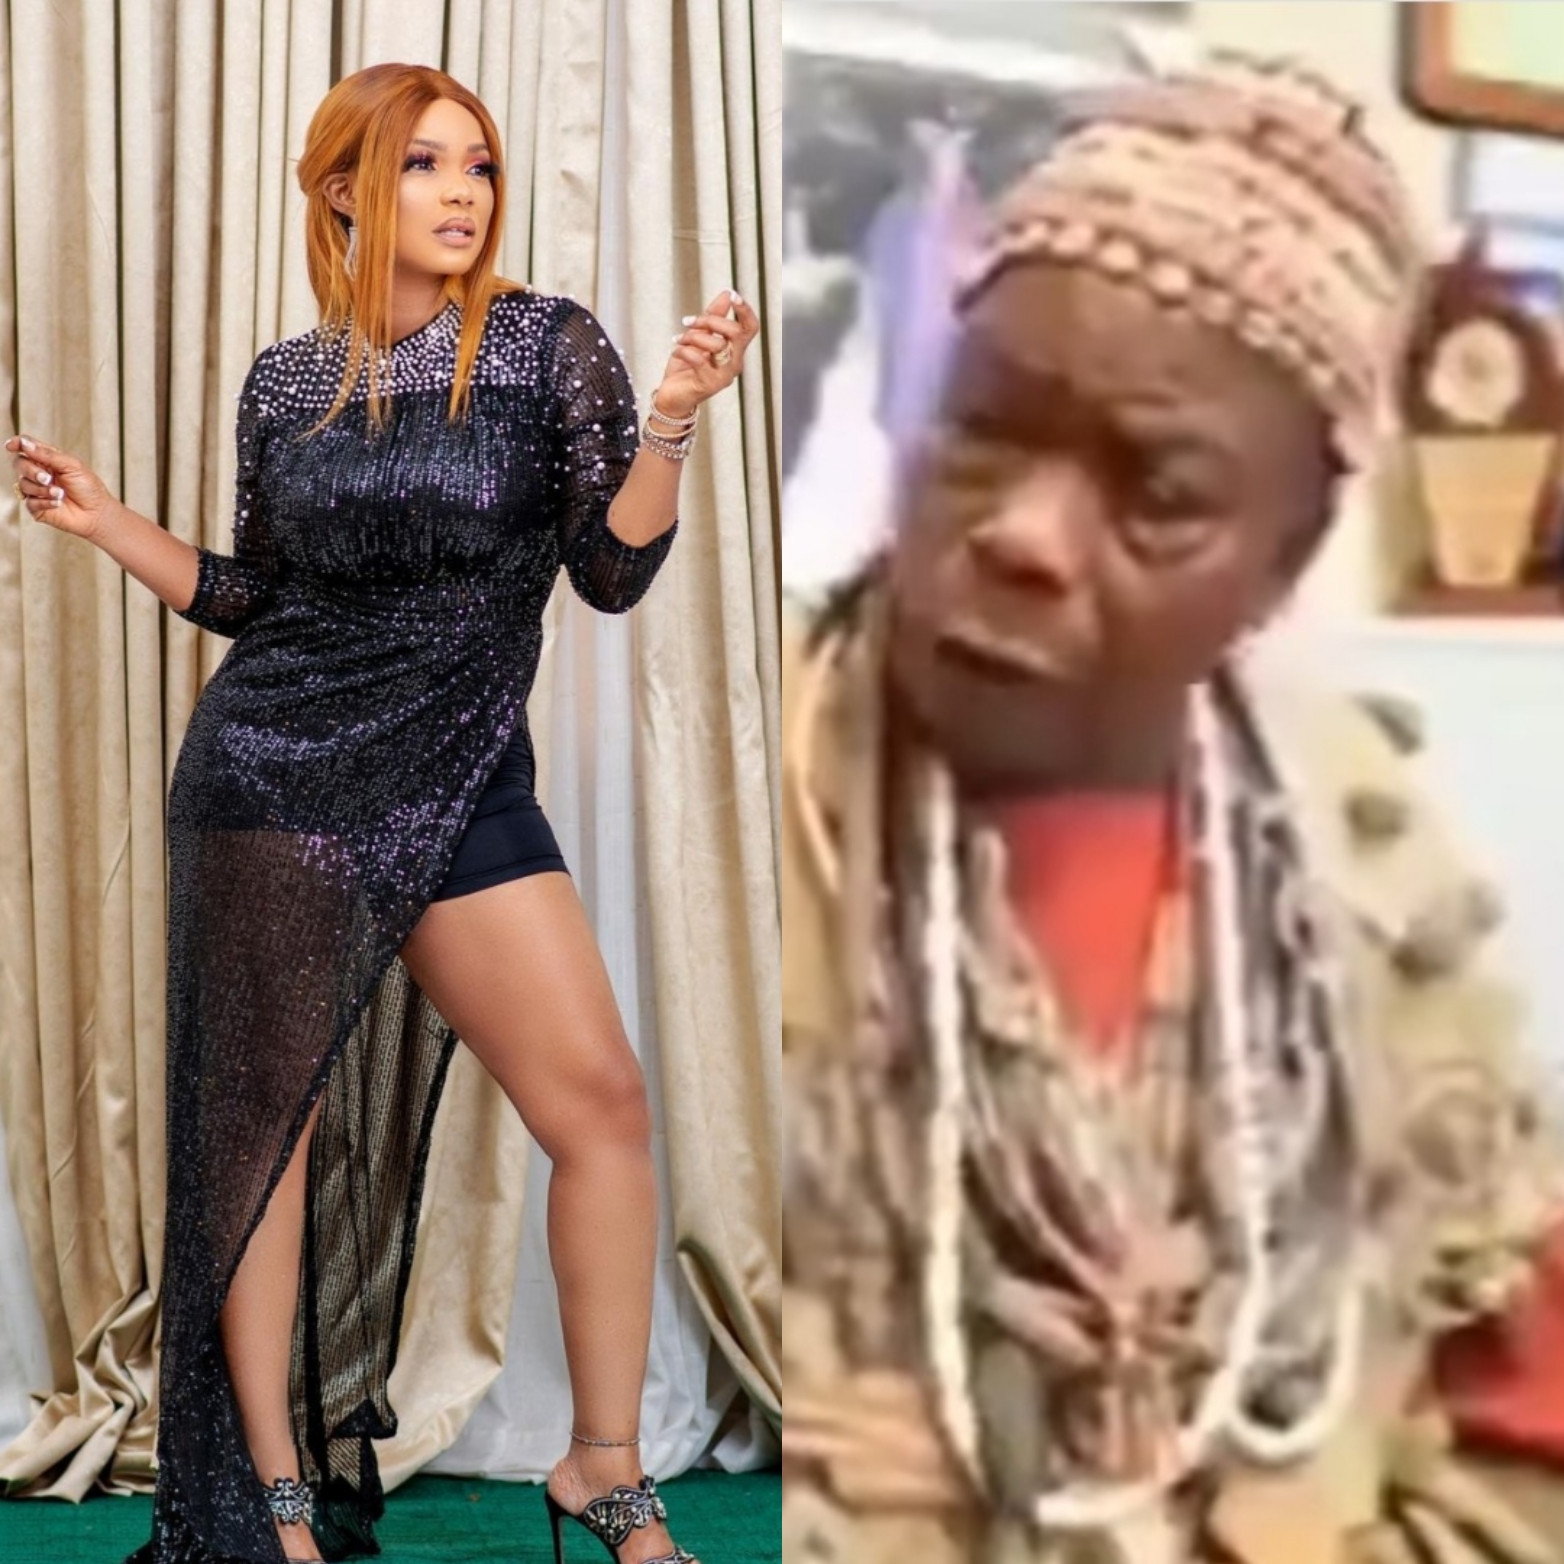 Iyabo Ojo speaks as elderly man grants interview calling her a prostitute and saying she will